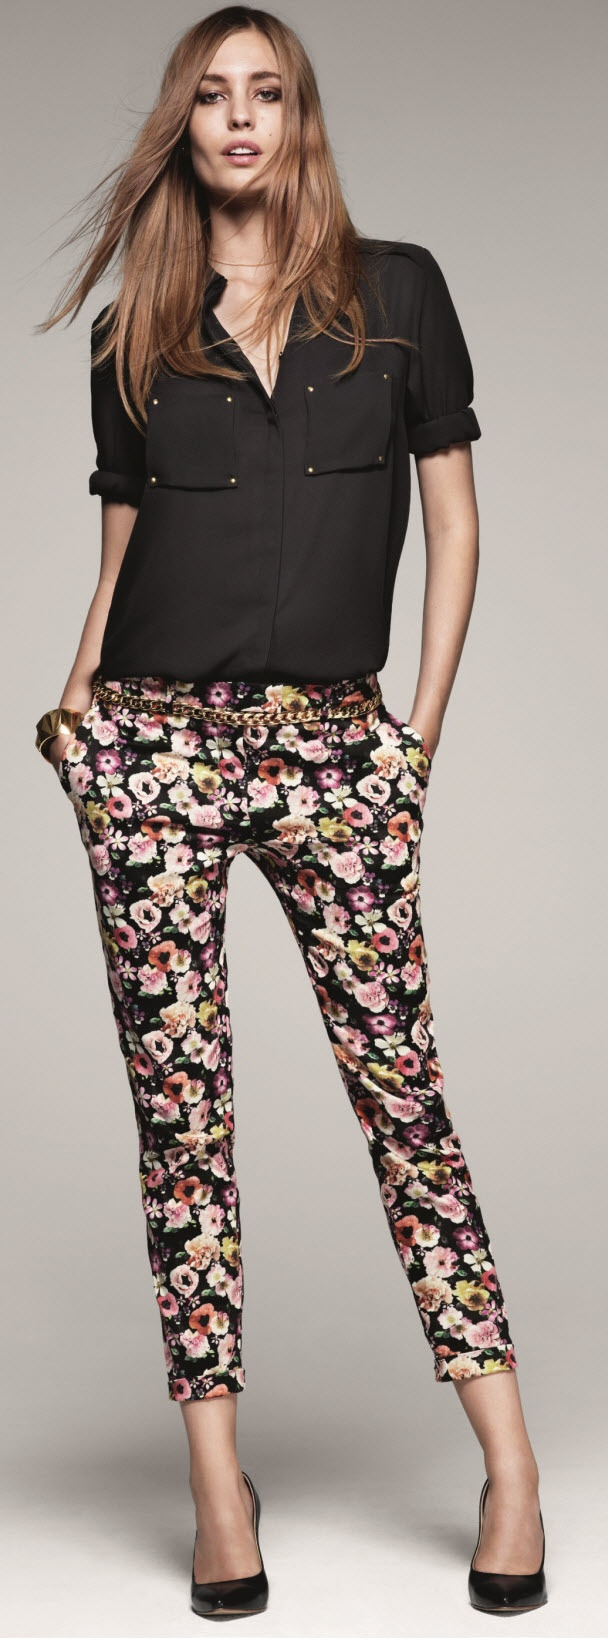 H & M Spring 2013 - floral pants are back in style!!! www.whywaittravel... 866-680-3211 @contreniatrvels on twitter Why Wait Travels on FaceBook #travelconsultant #travelspecialist